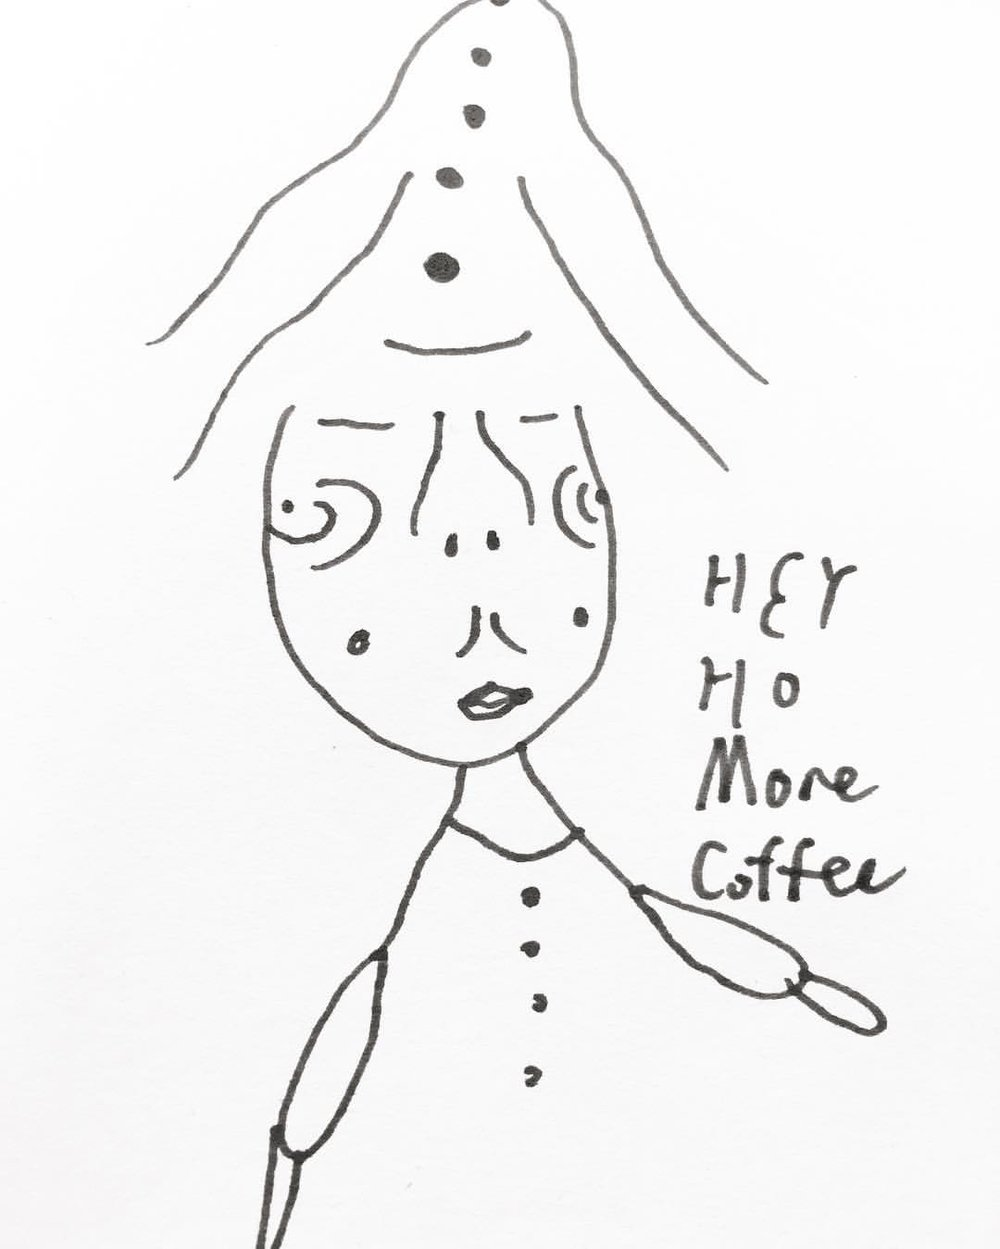 More coffee more addition more and more goodbye/ 04.08.2017